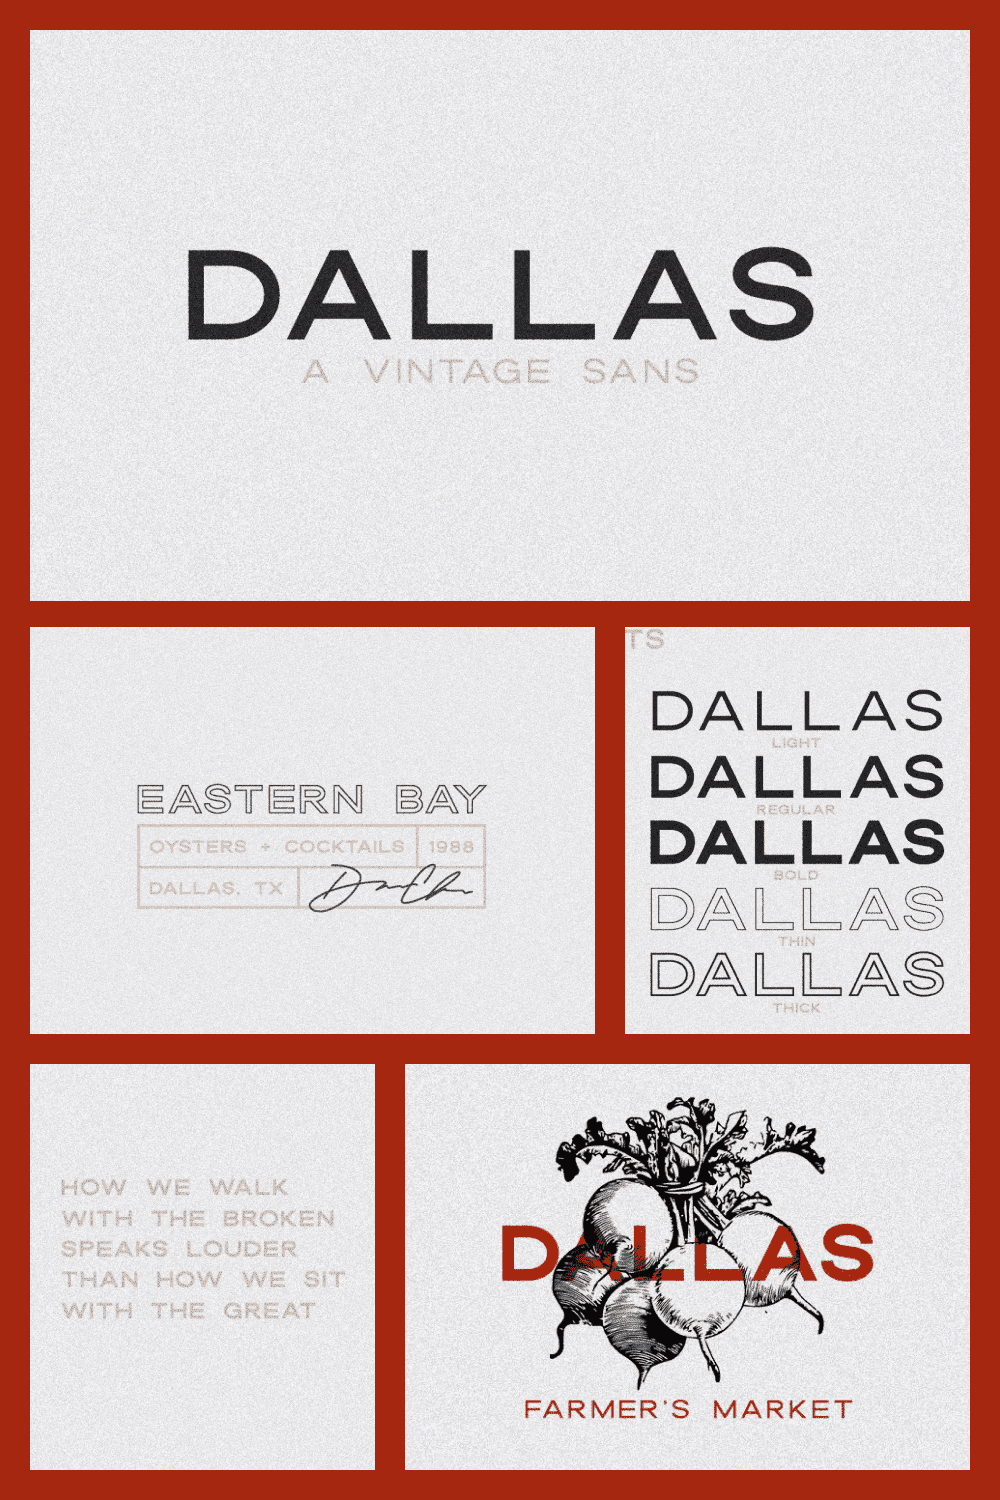 This beautiful all caps vintage sans serif is so versatile and looks great in just about any context.